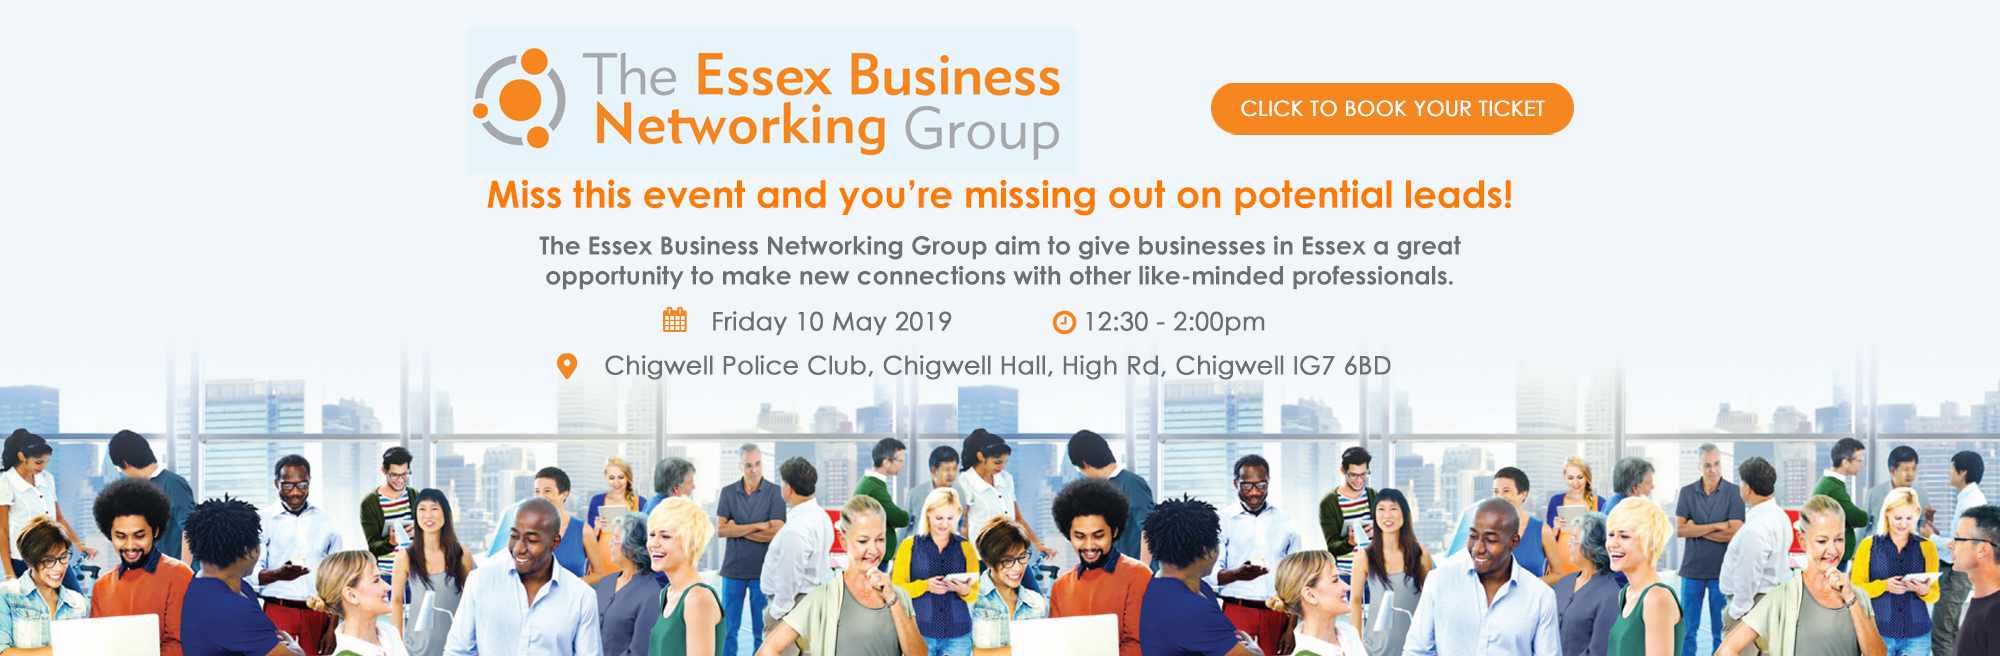 The Essex Business Network Group is going from strength to strength